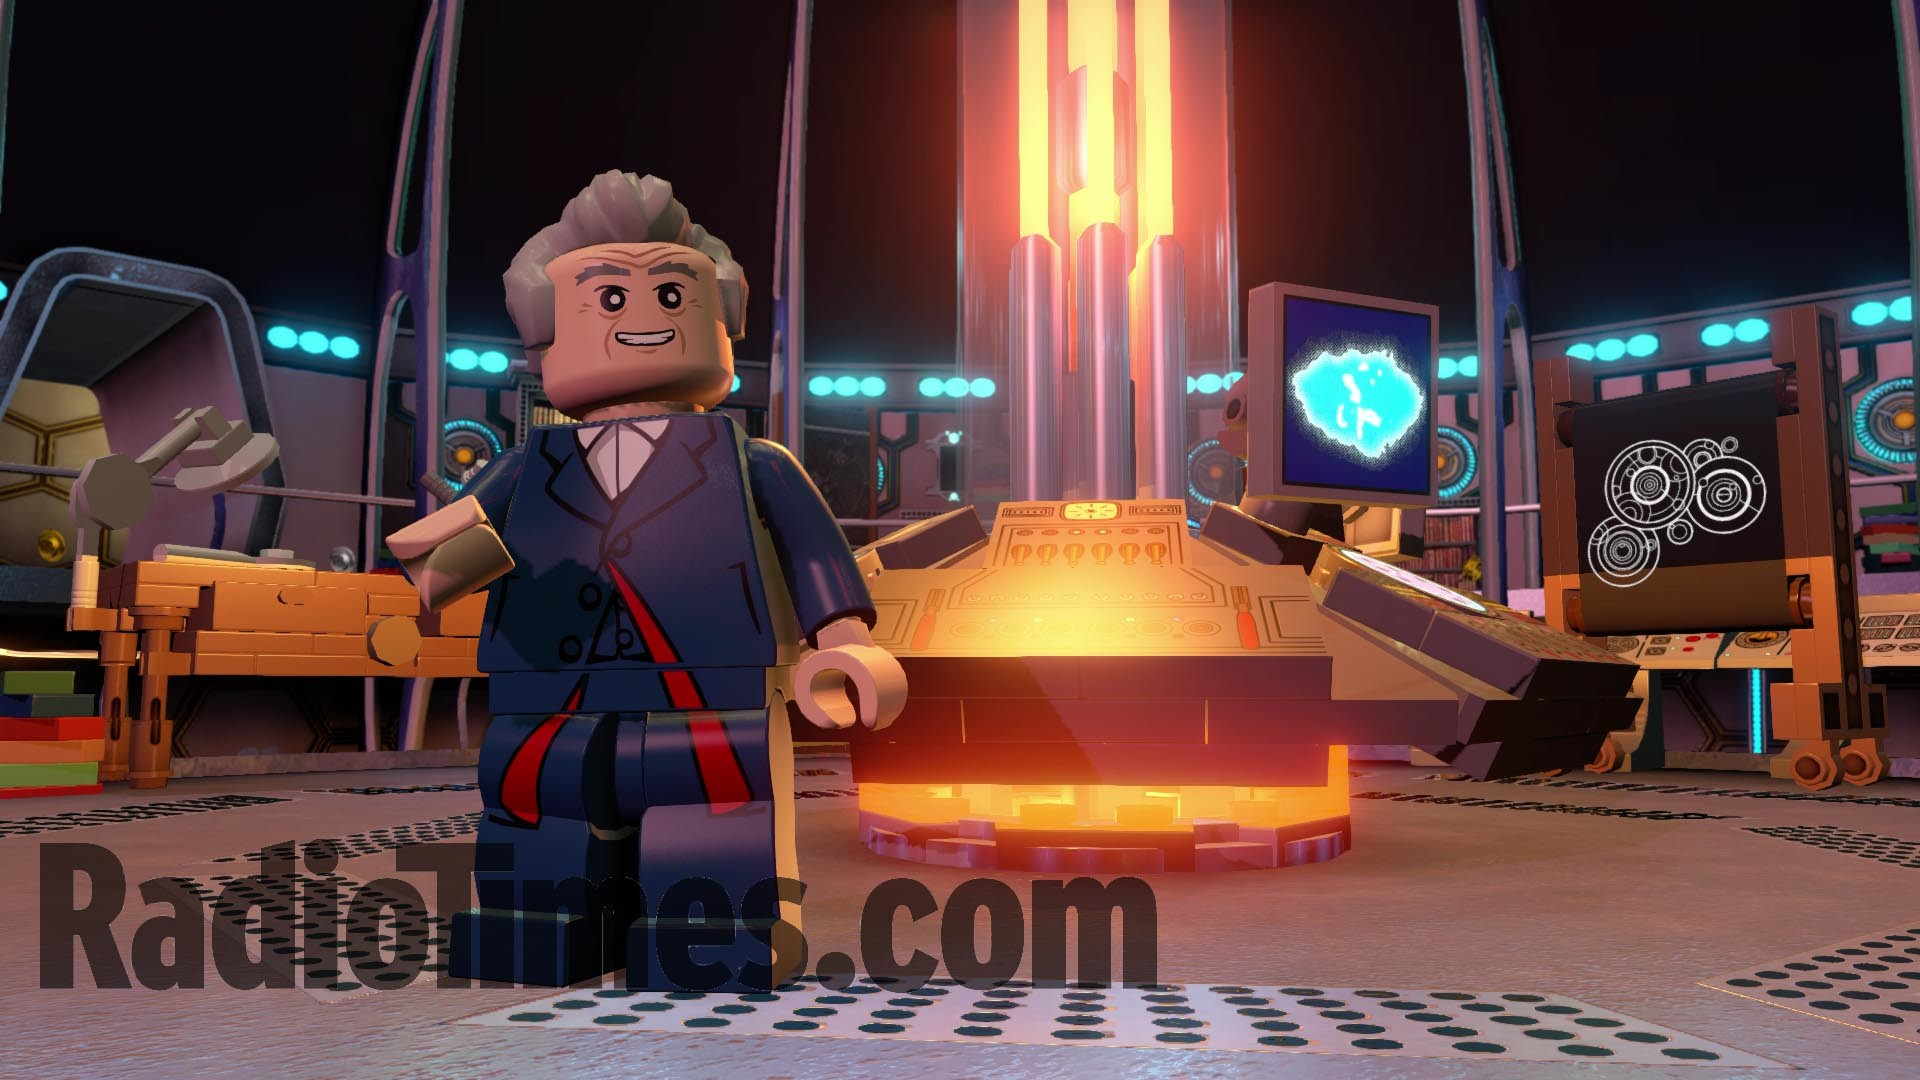 Doctor Who Lego Dimensions pack: see every Tardis interior, from William  Hartnell to David